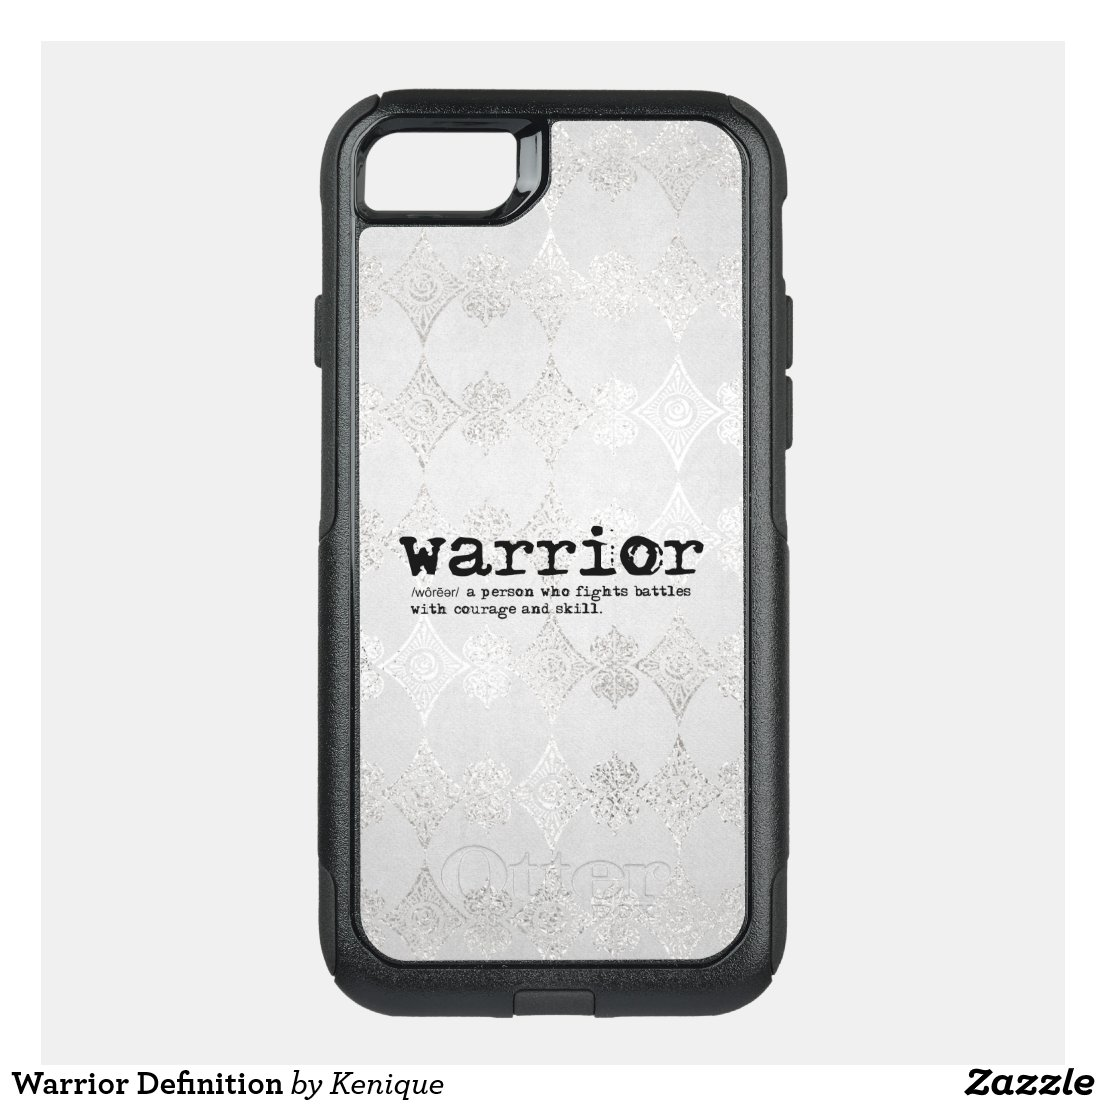 Warrior OtterBox Phone Case